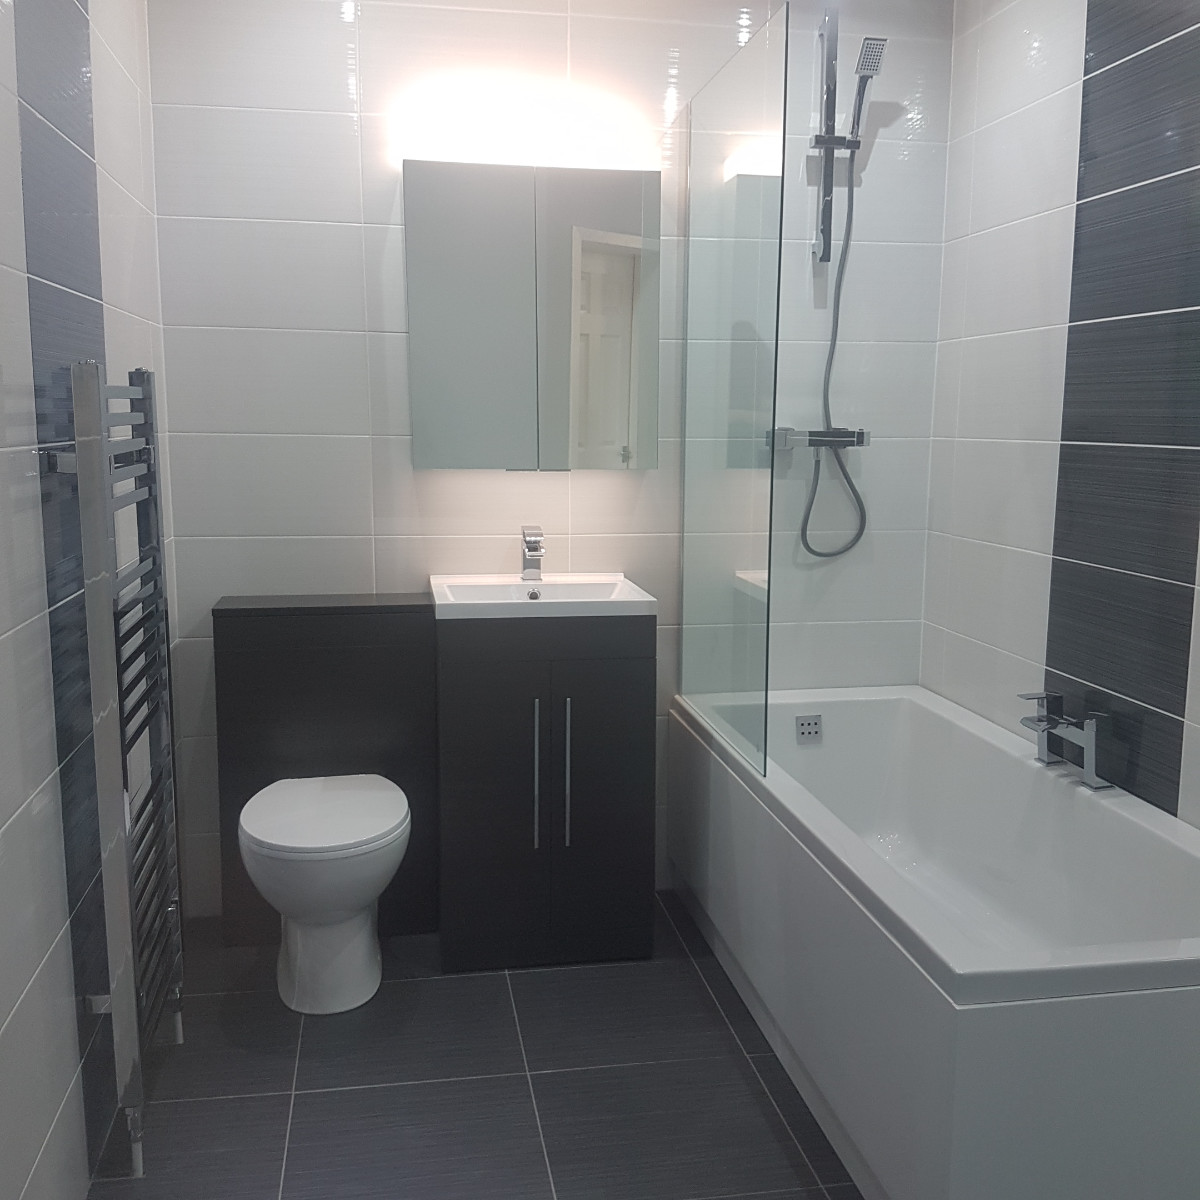 Fitted Bathroom Package Deals   Mr Bathrooms Bathroom package deal